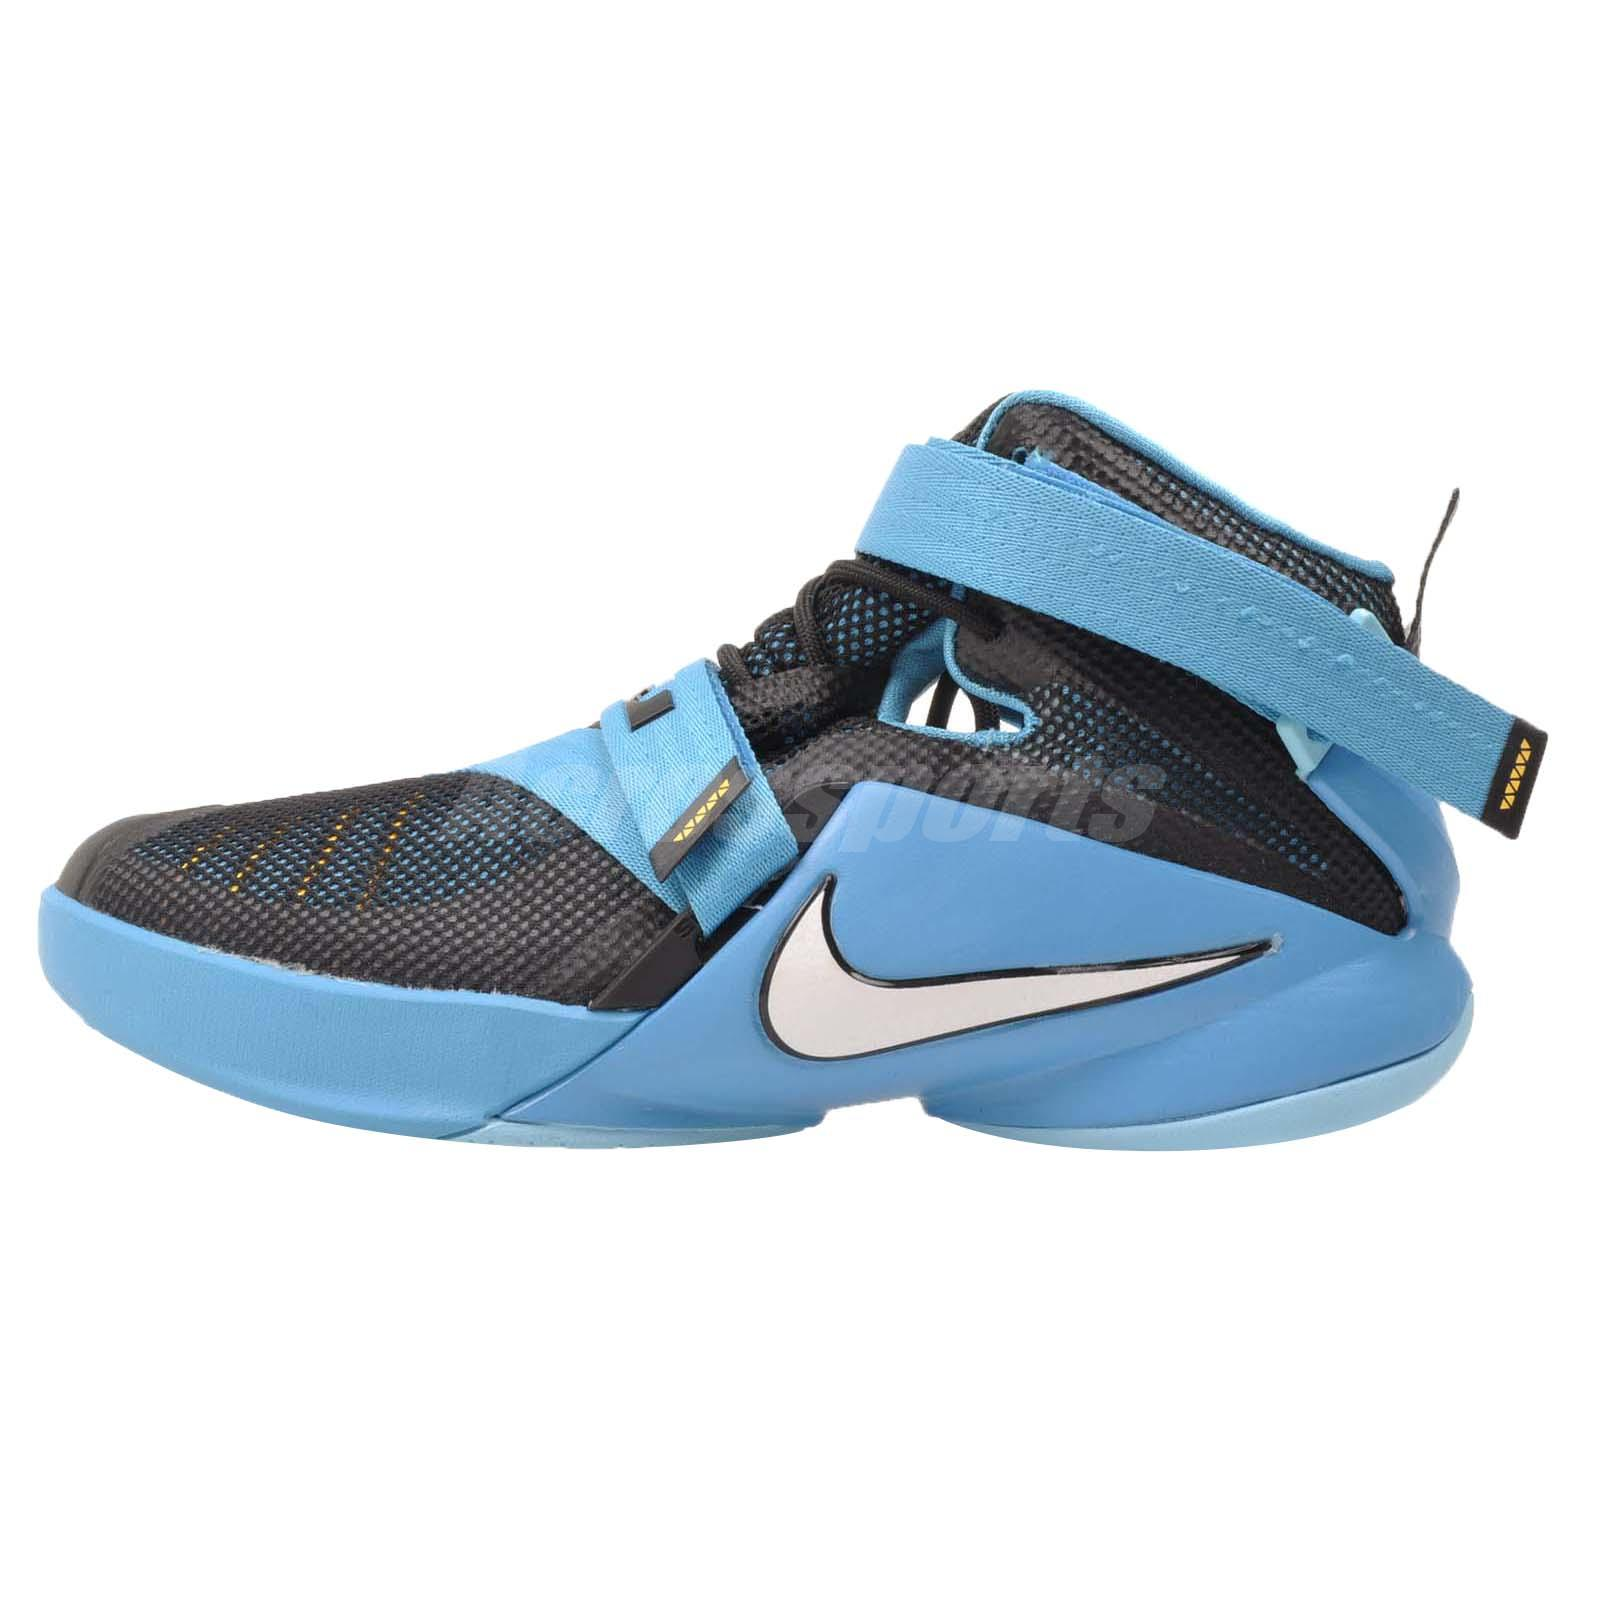 nike lebron soldier ix gs youth boys girls basketball